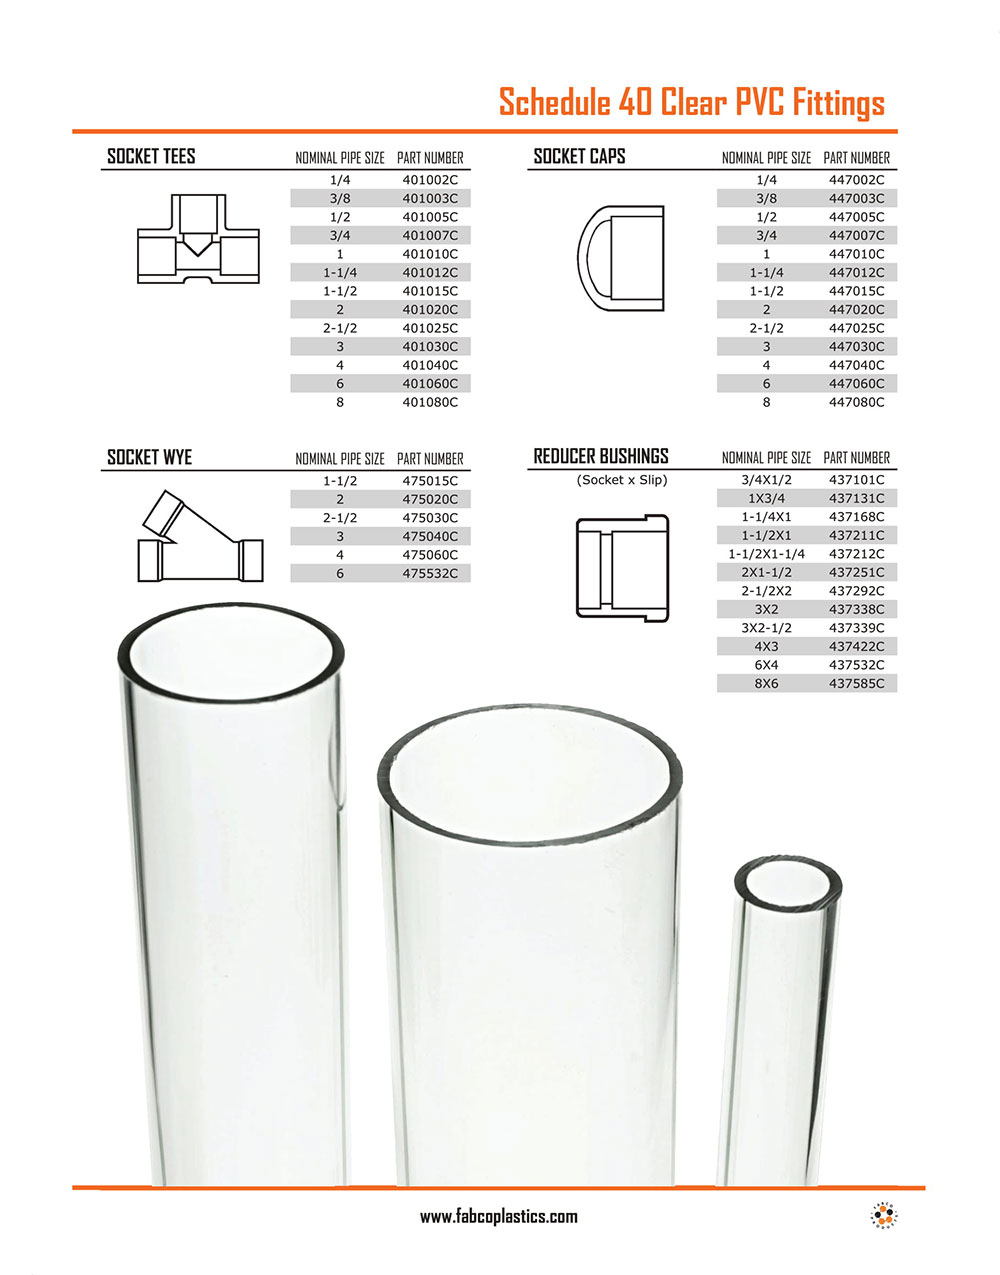 Schedule 40 Clear PVC Fittings